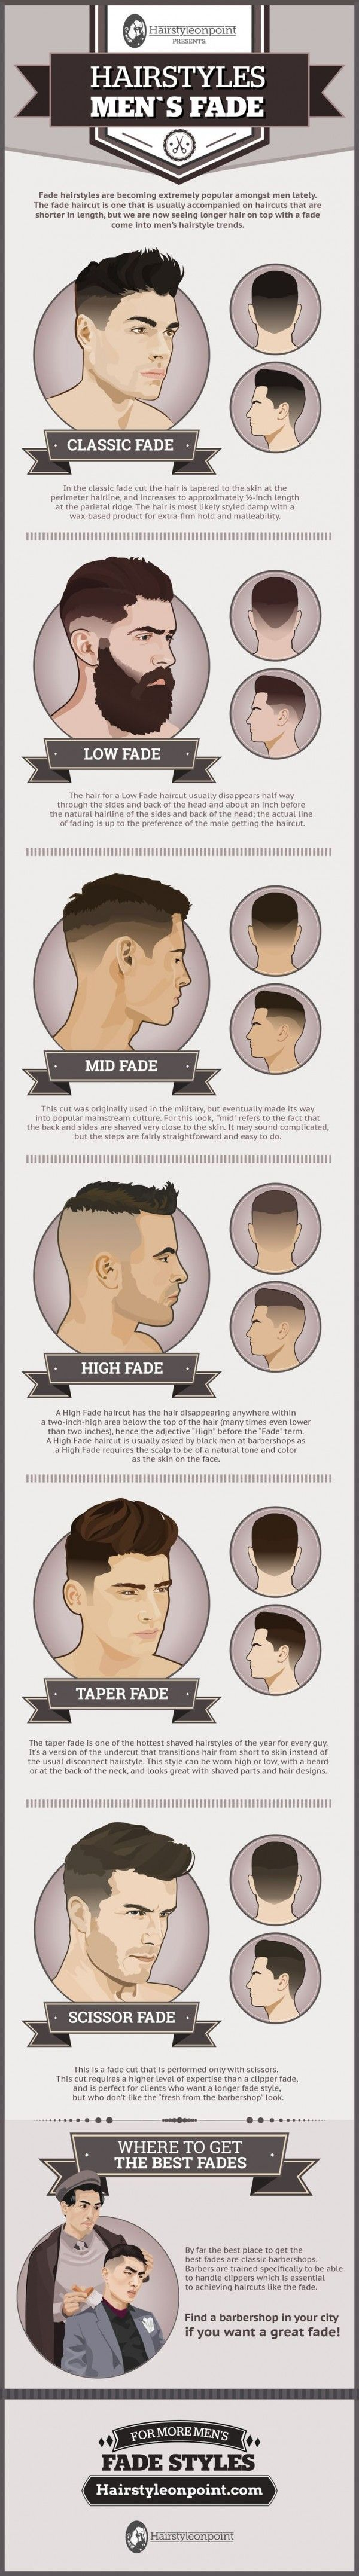 Haircut designs black men menhircut  hair designs  pinterest  hair style barbershop and